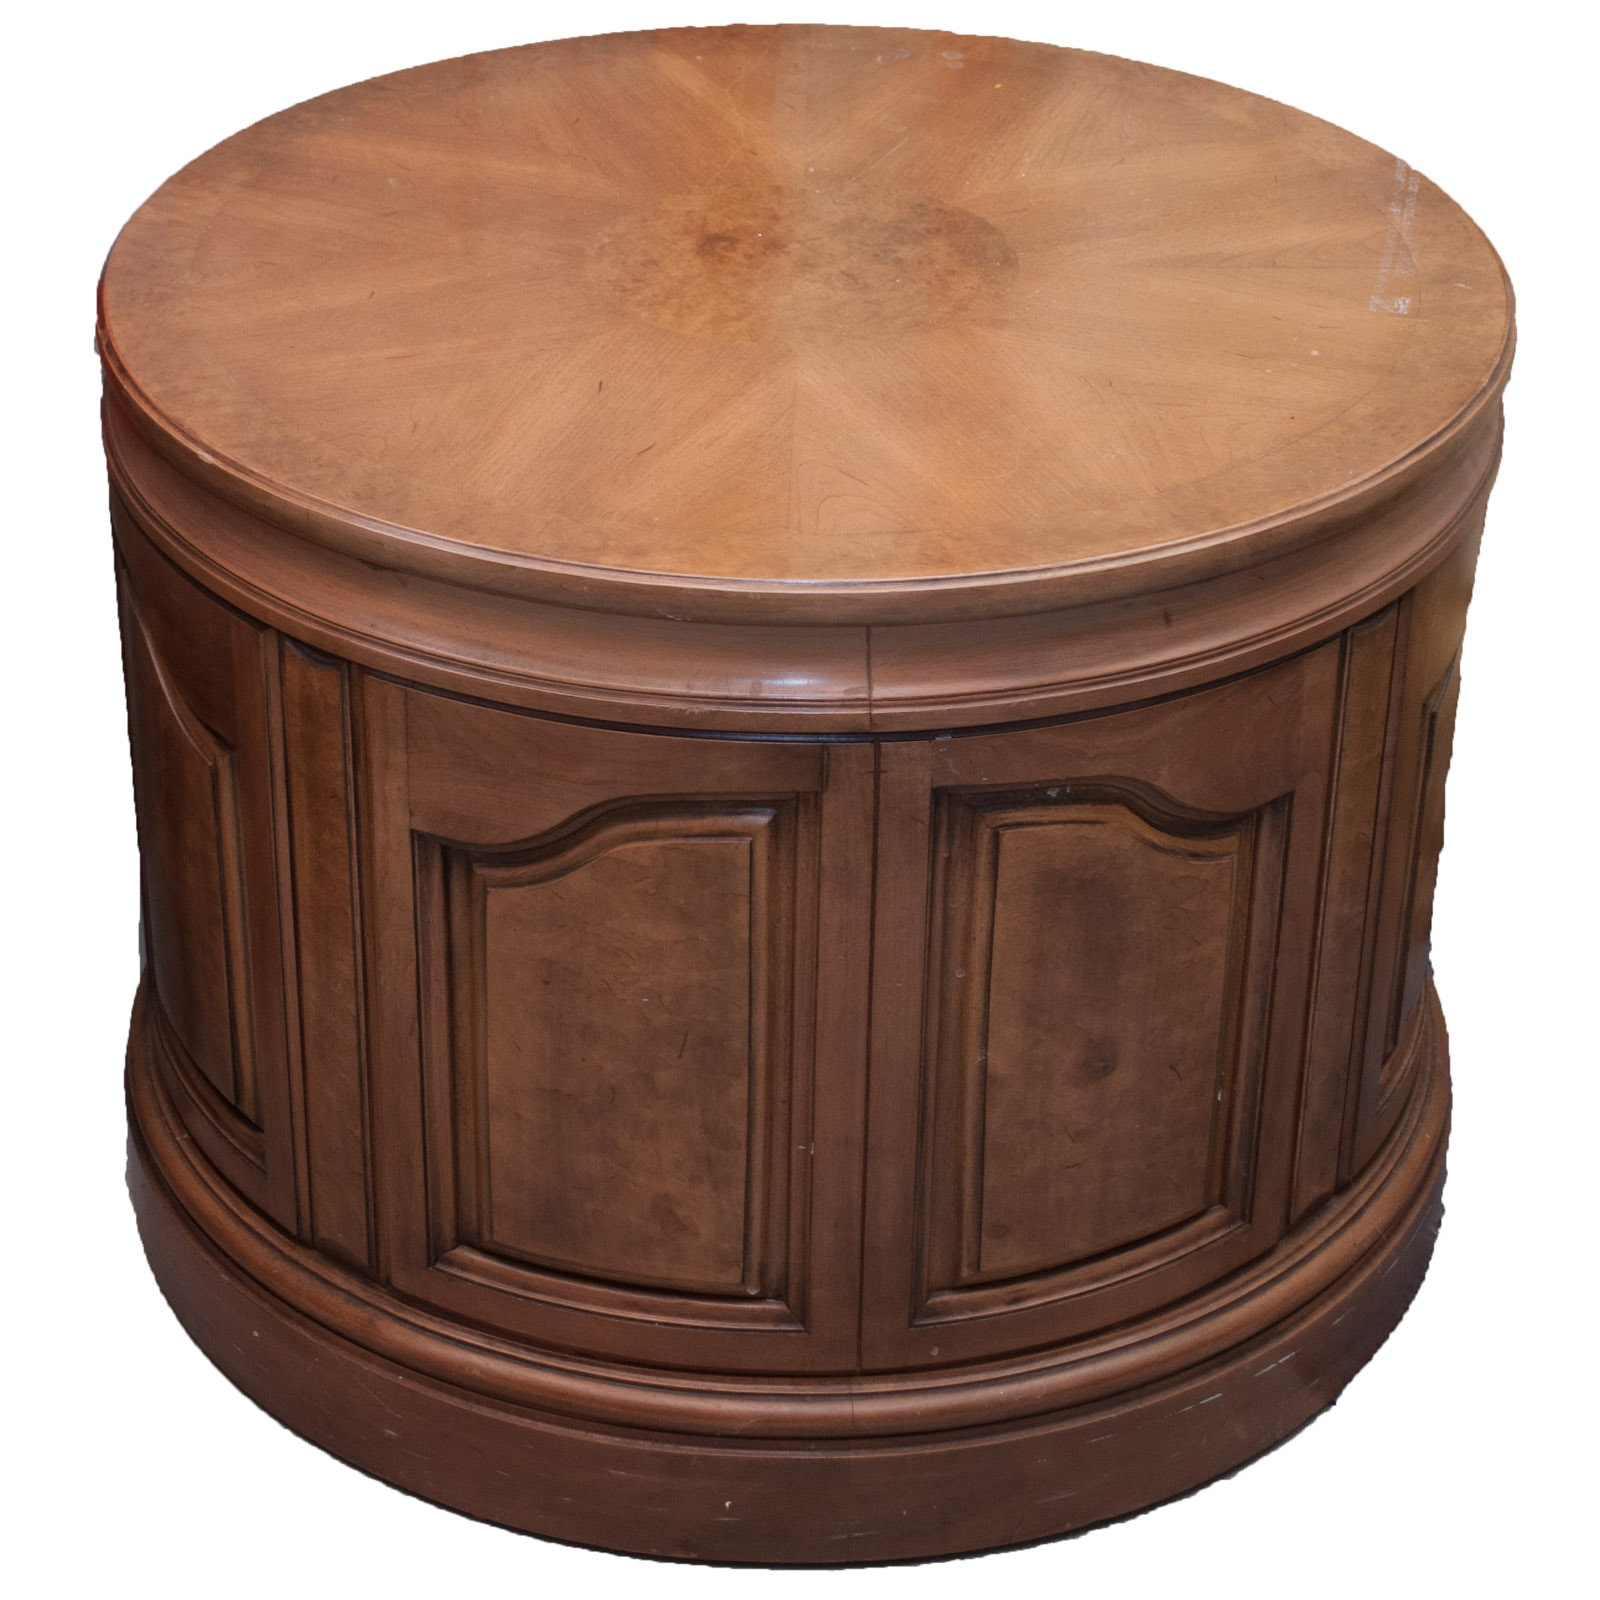 Drum Style Wood Center Table with Storage Cabinet